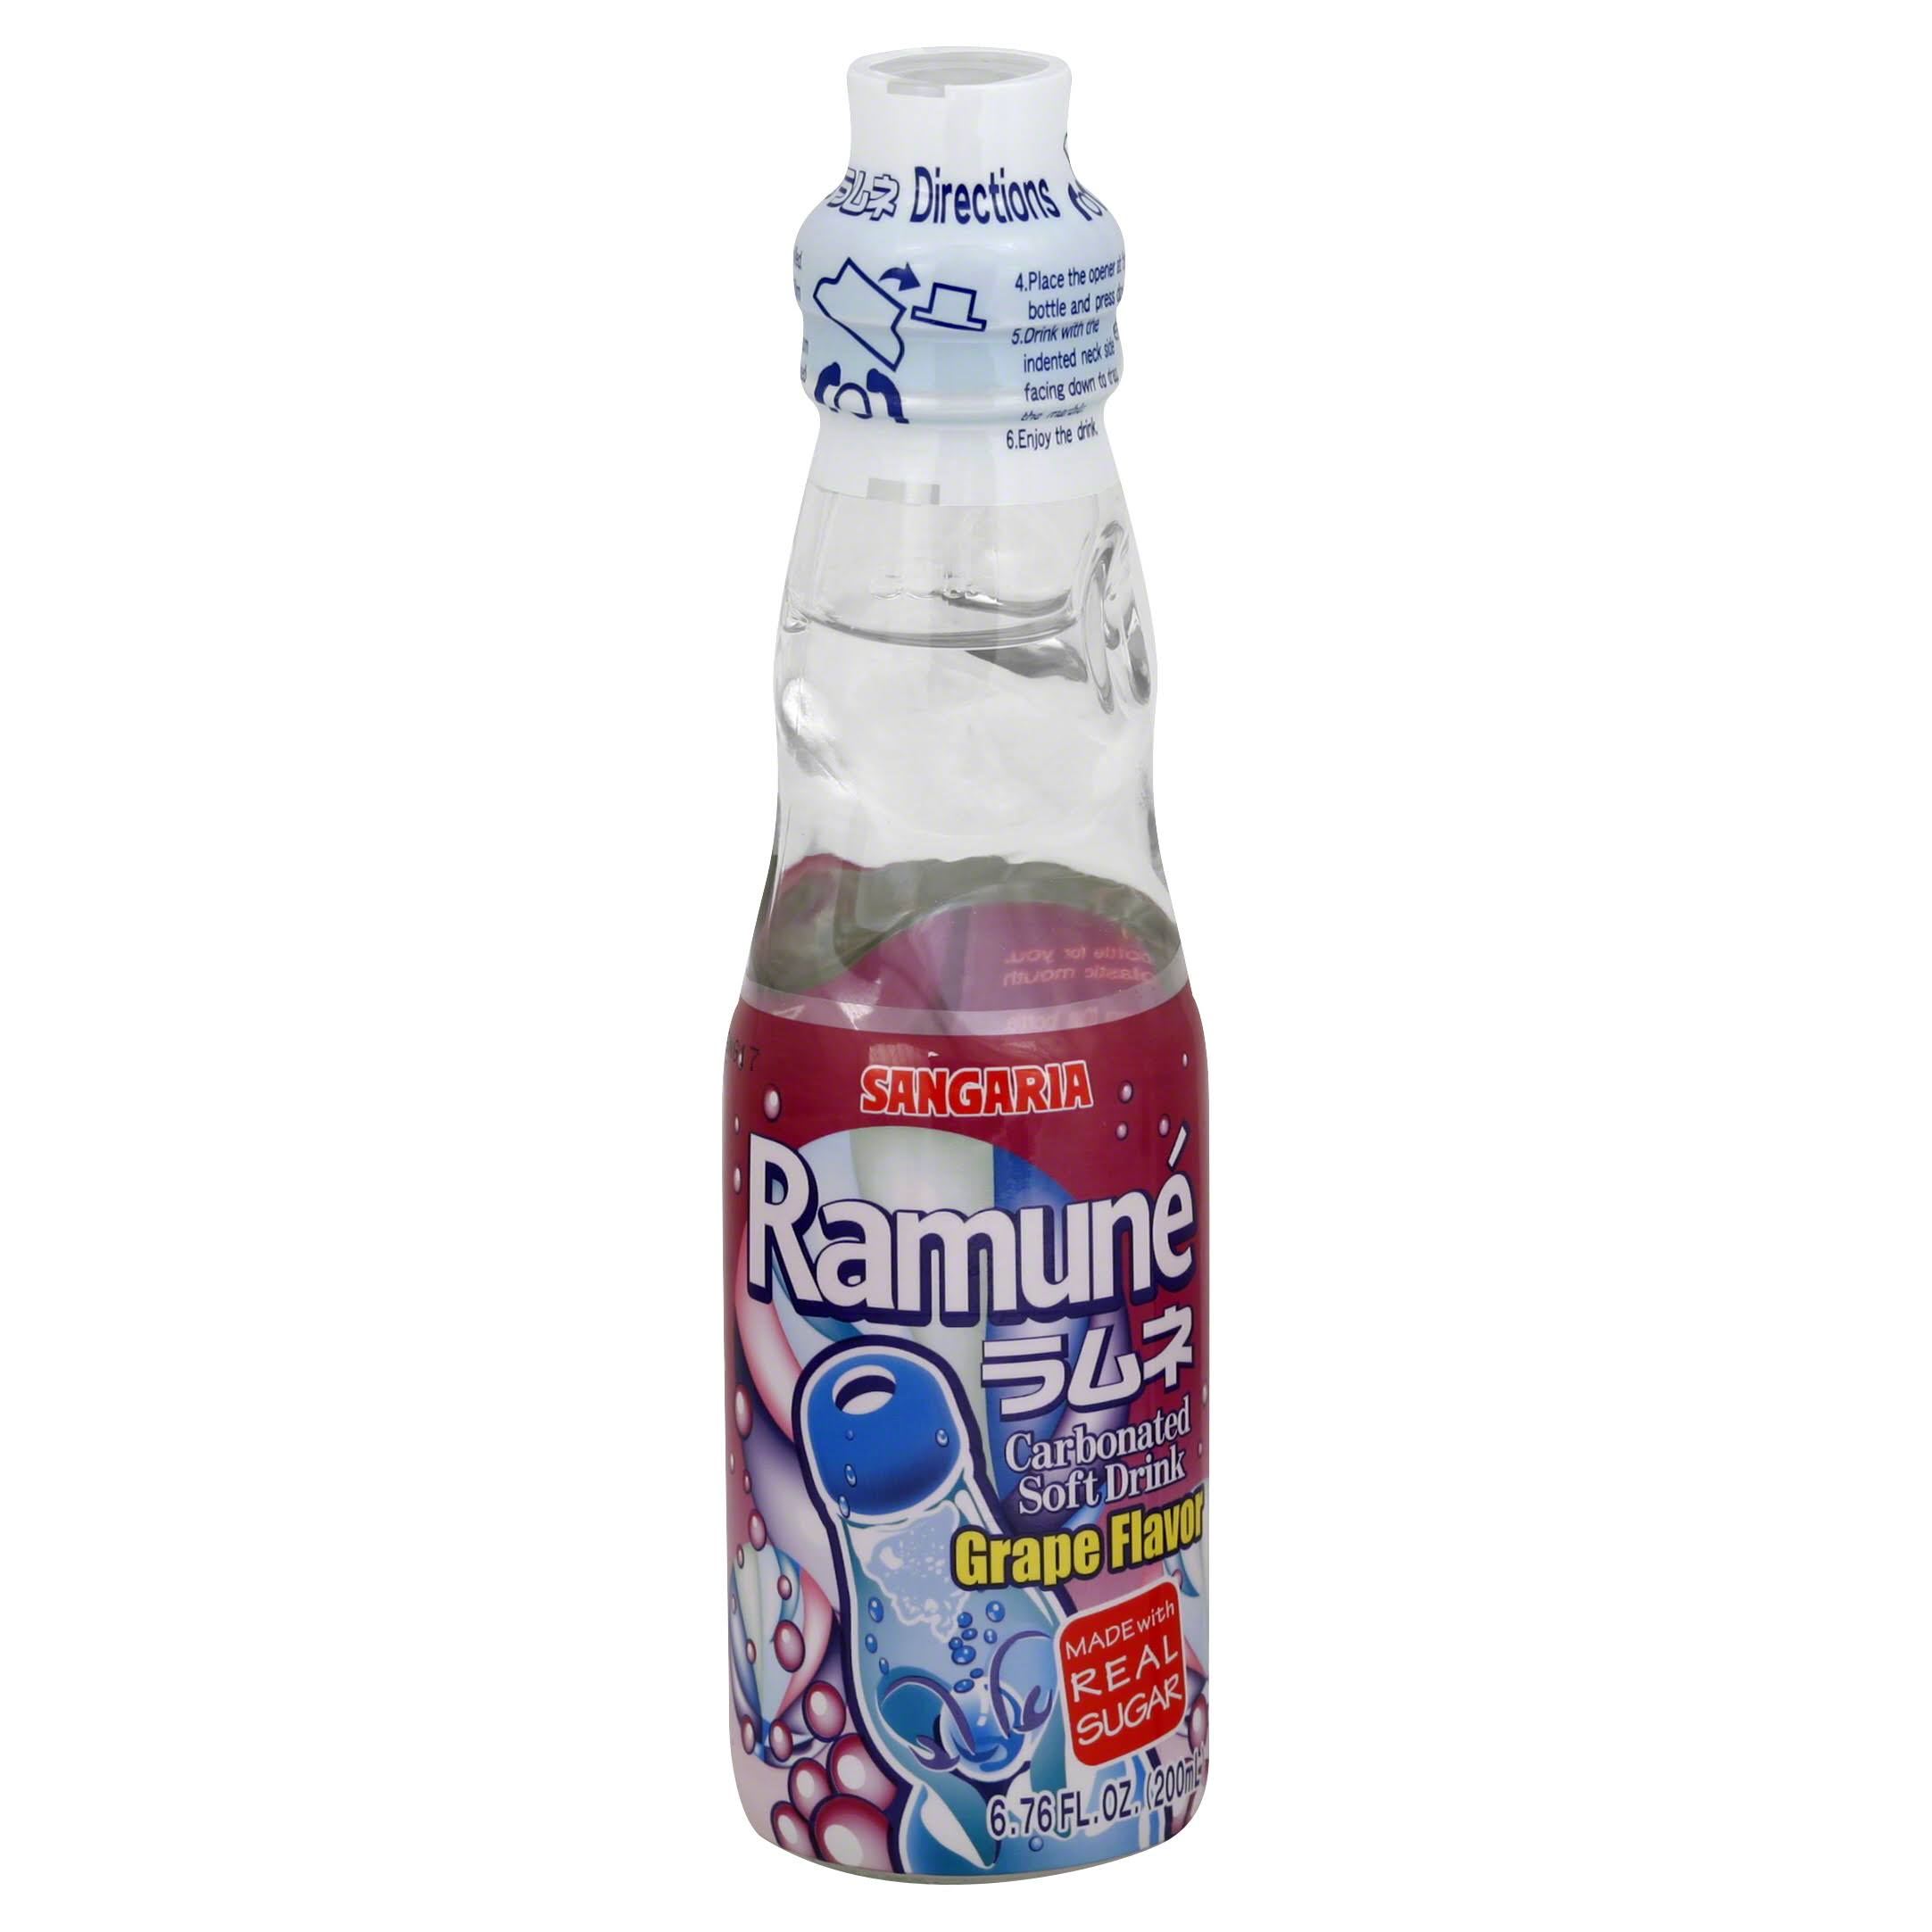 Sangaria Soft Drink, Carbonated, Ramune, Grape Flavor - 6.76 fl oz